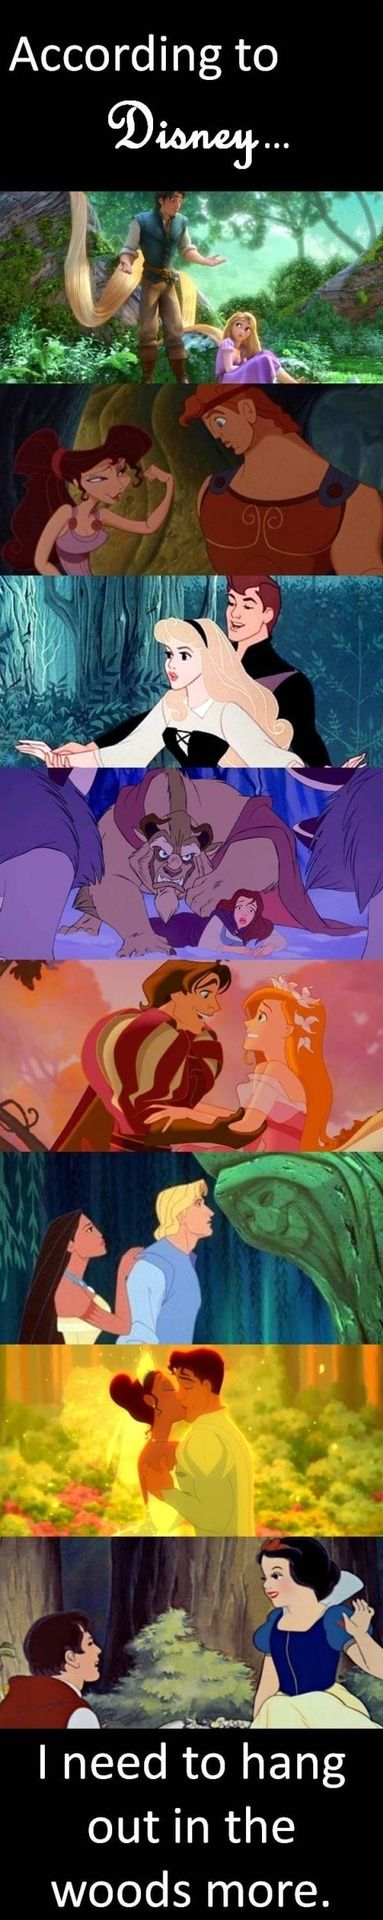 According to Disney, one thing is clear: Romance can be found in the woods, not in the cities except, of course, for Lady and the Tramp.